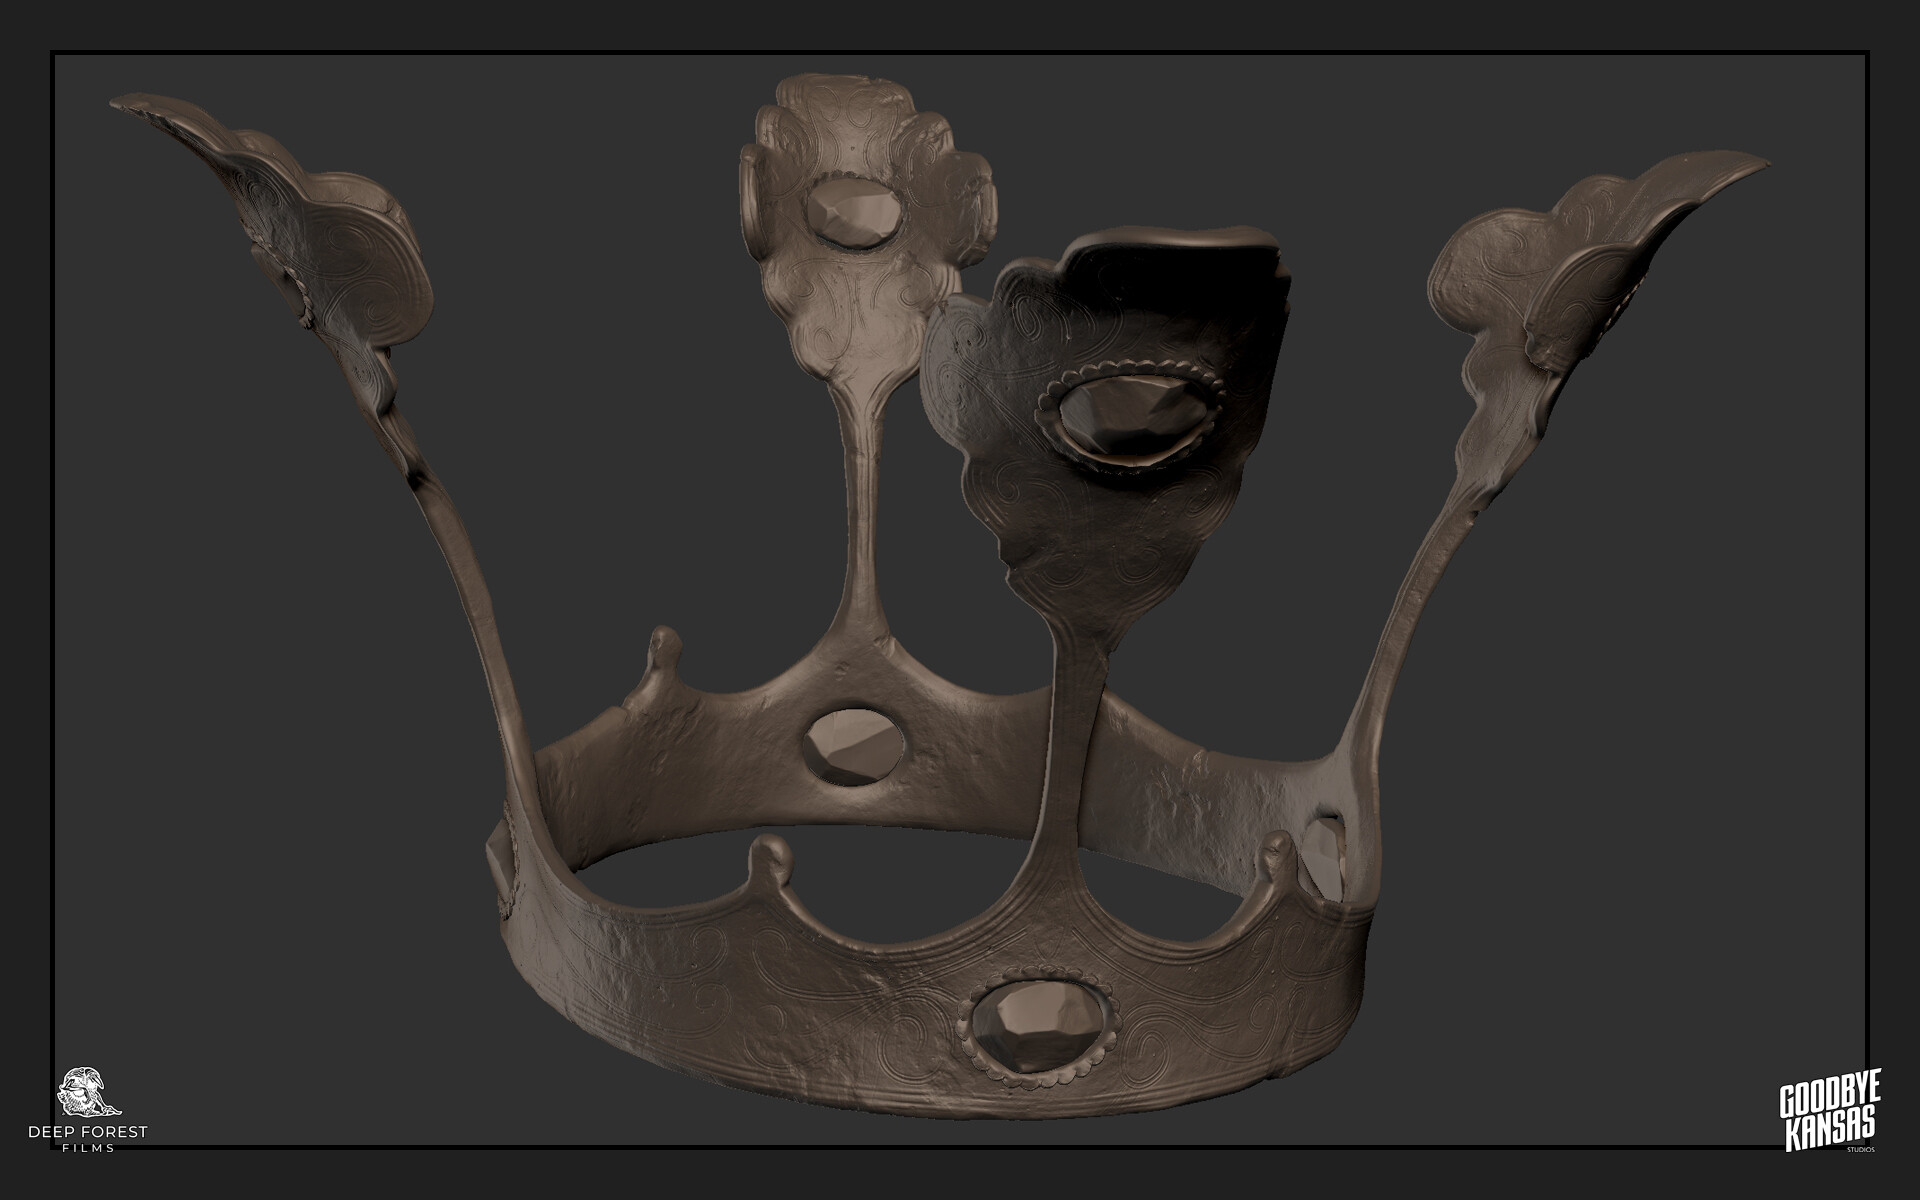 ZBrush sculpt of the princess's crown